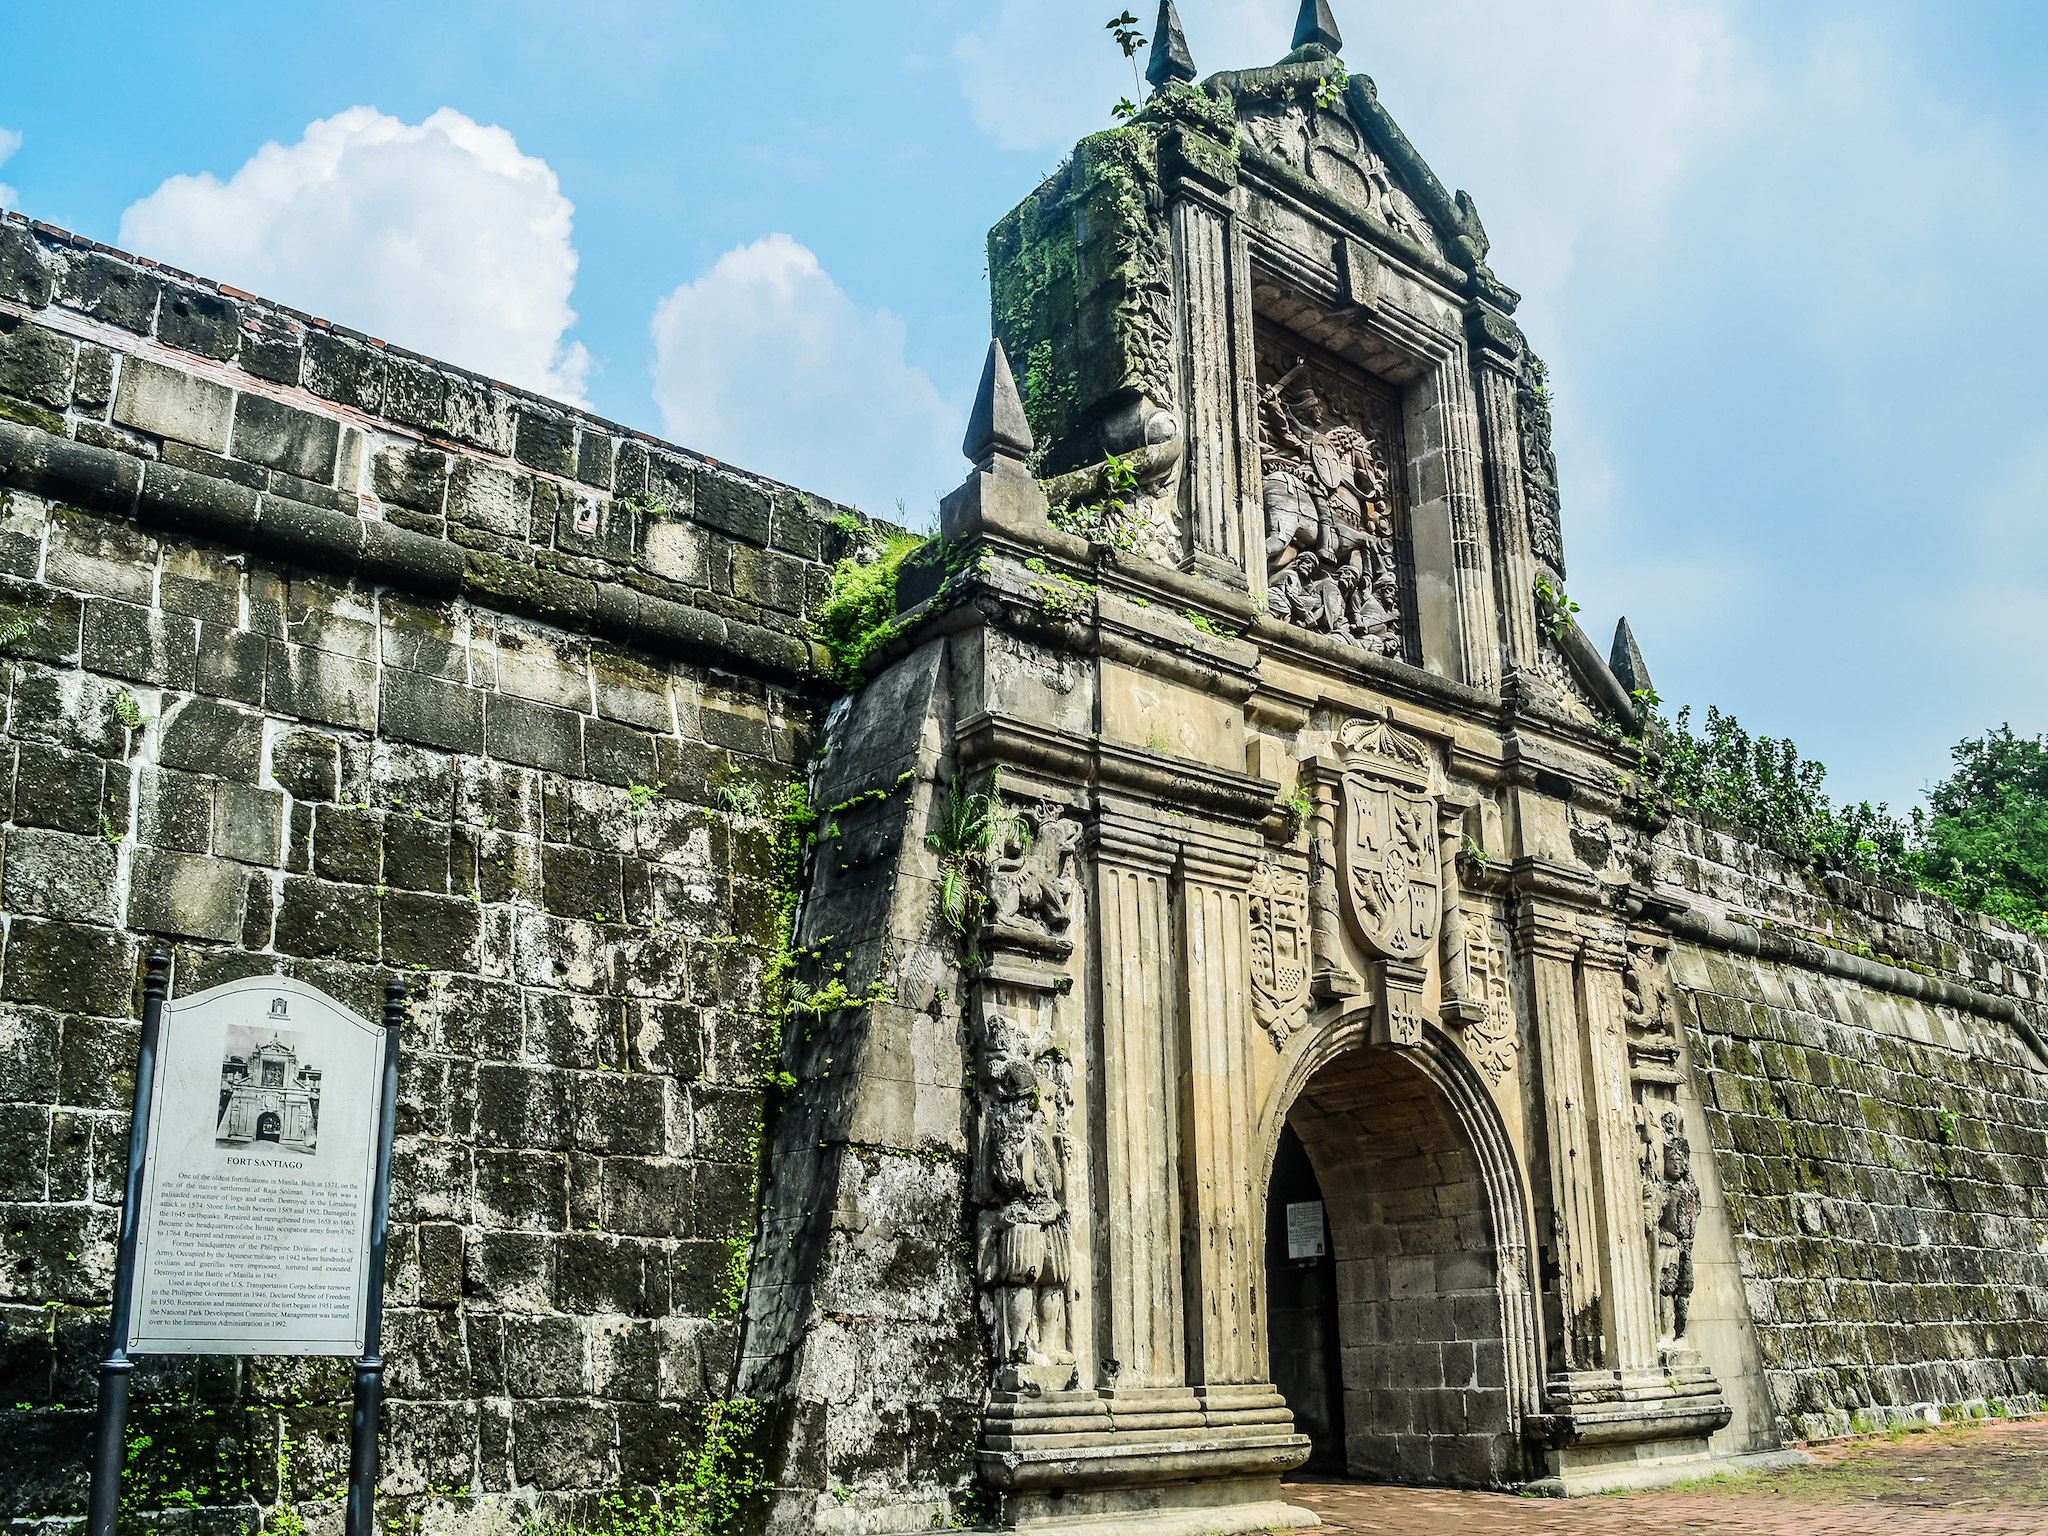 The walled city of Intramuros